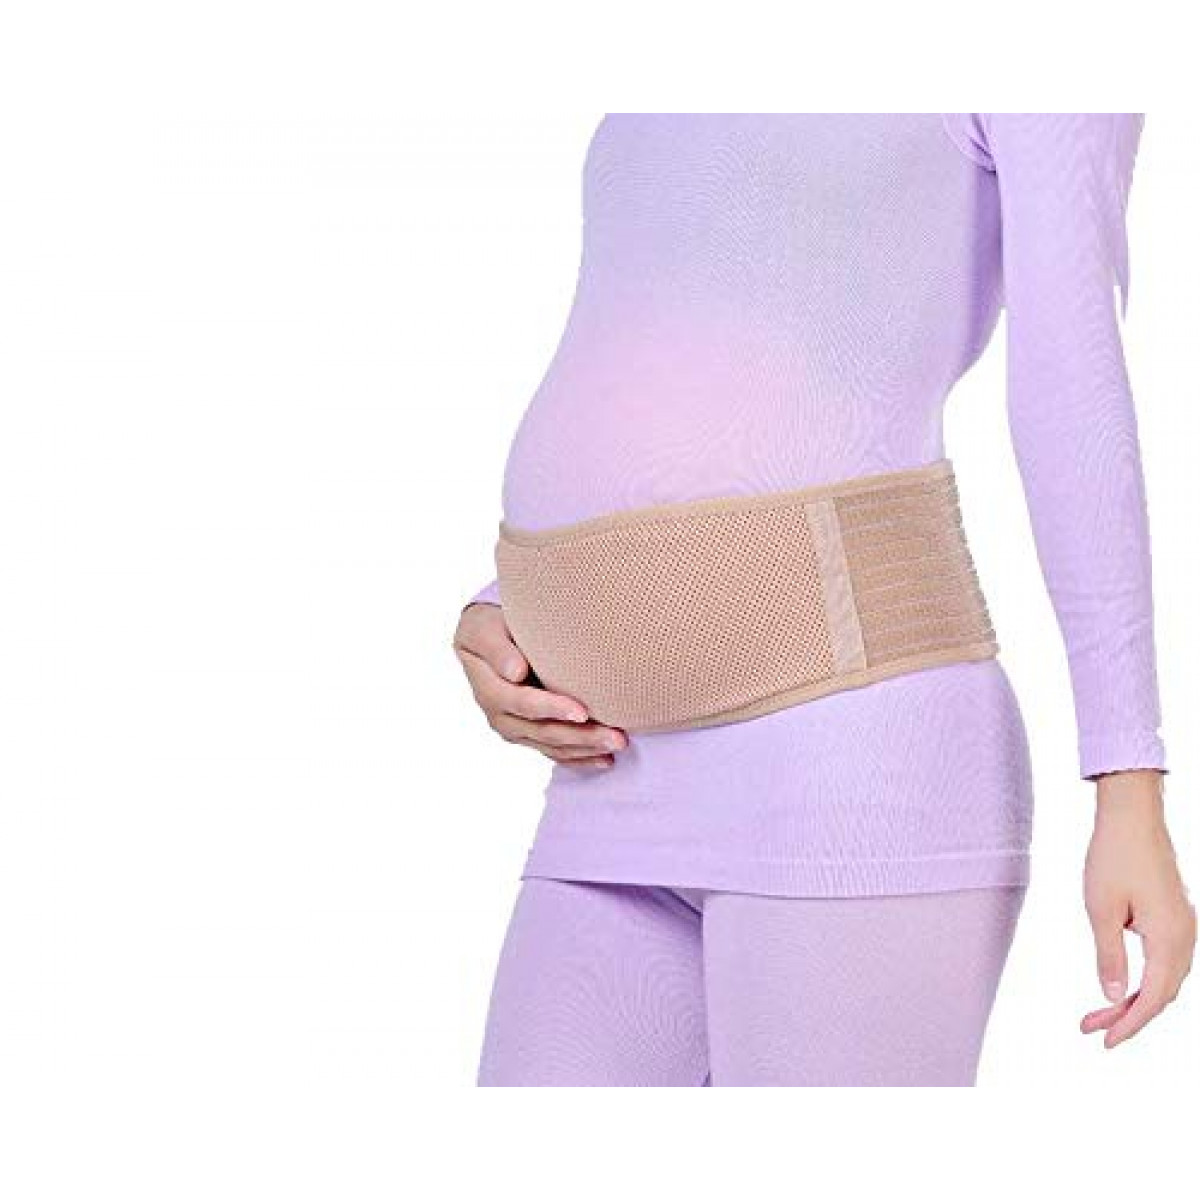 Pelvic and Back Relief Maternity Support Belt X-Small Beige Beige Pregnancy Abdominal Binder Prenatal Belly Support Band